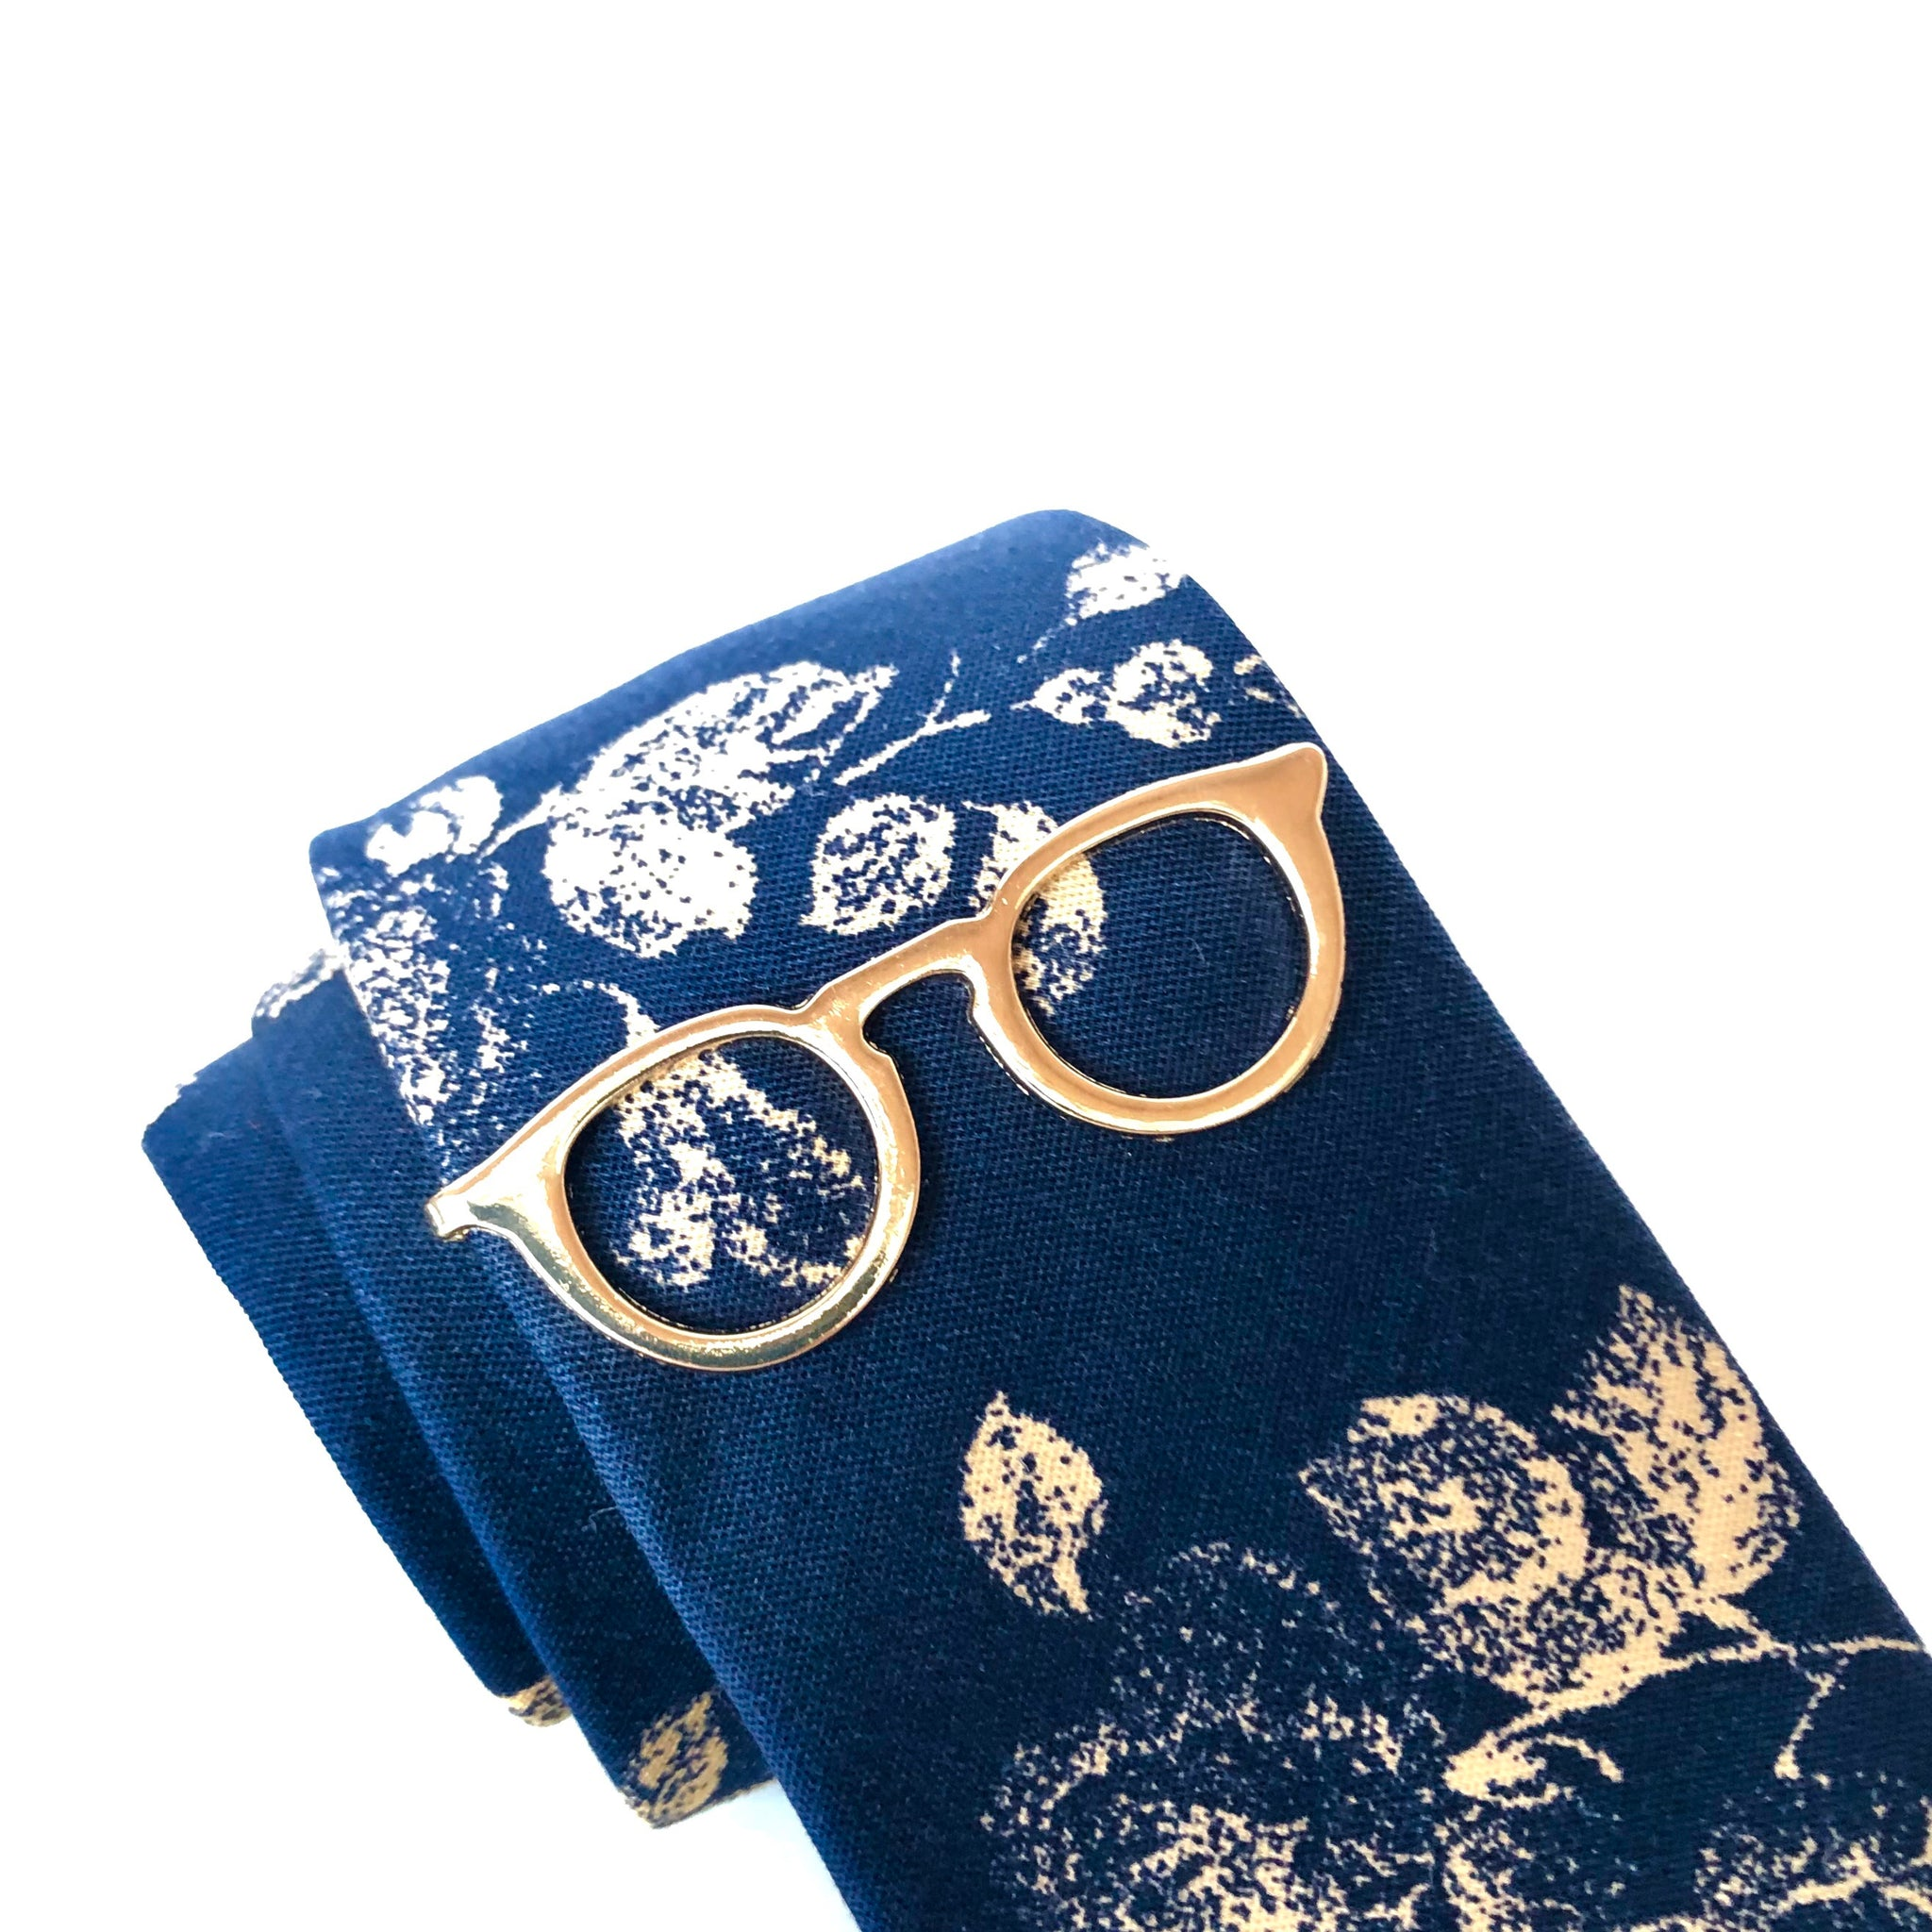 Christopher Spectacle Tie Clip in Gold